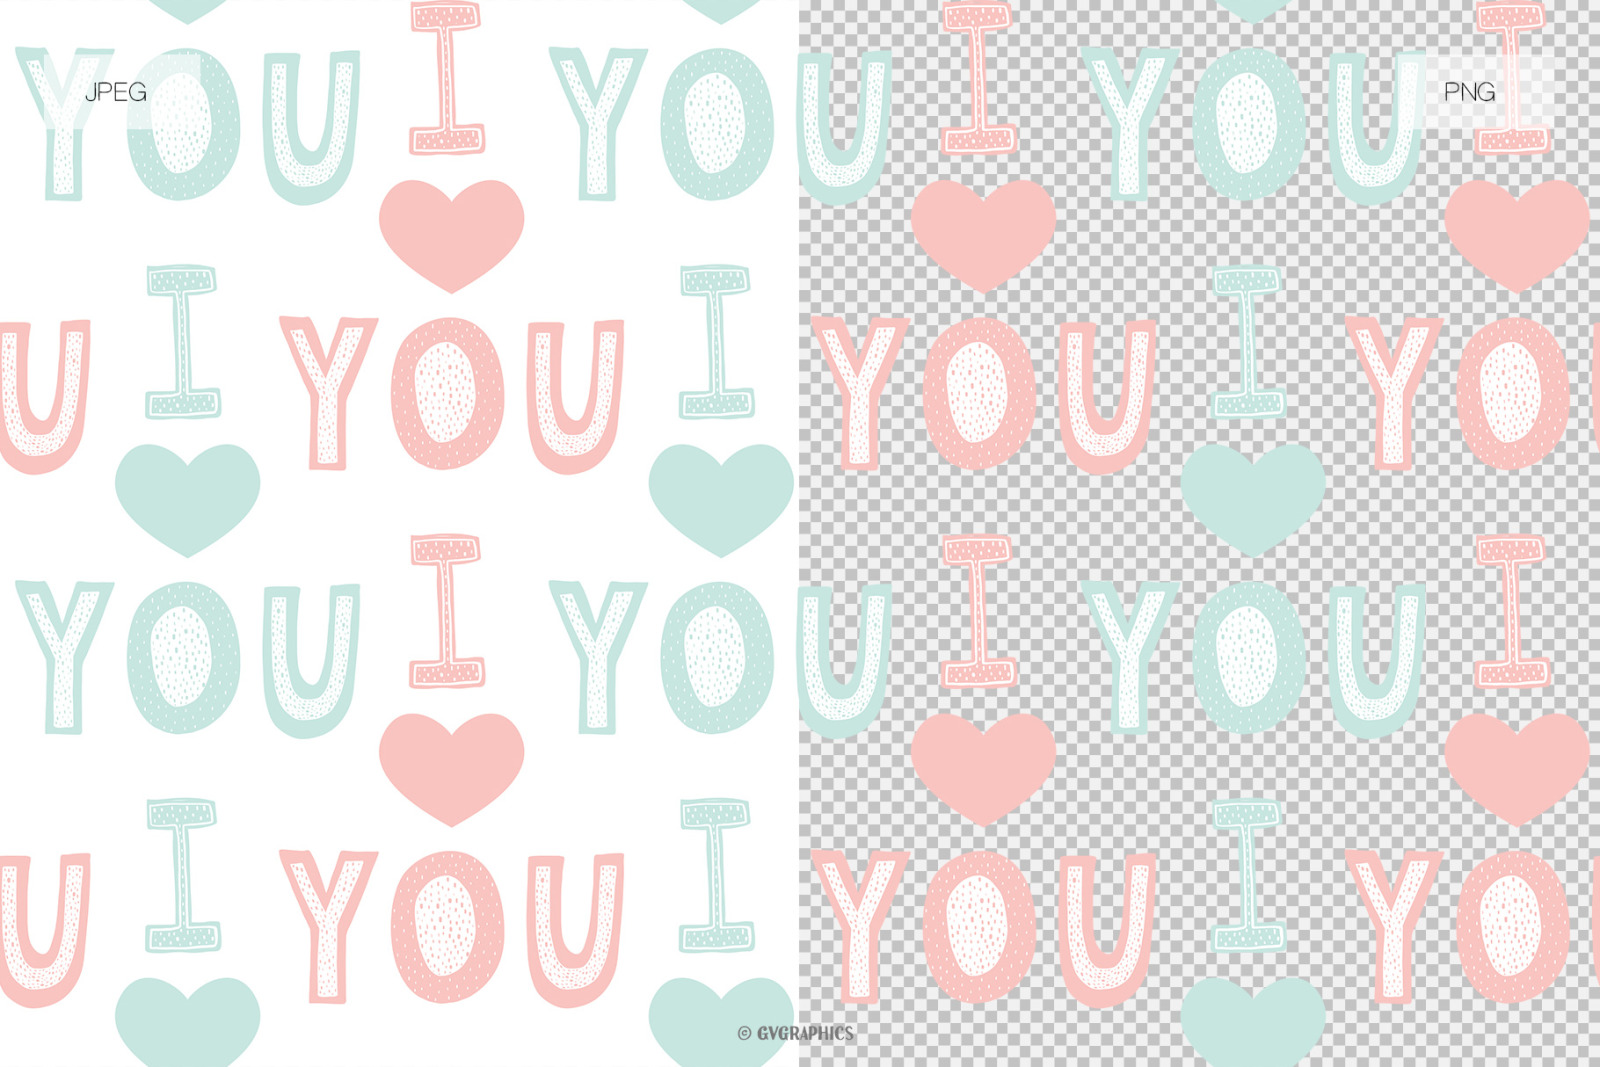 12 Happy Valentine's Day Vector Patterns and Seamless Tiles